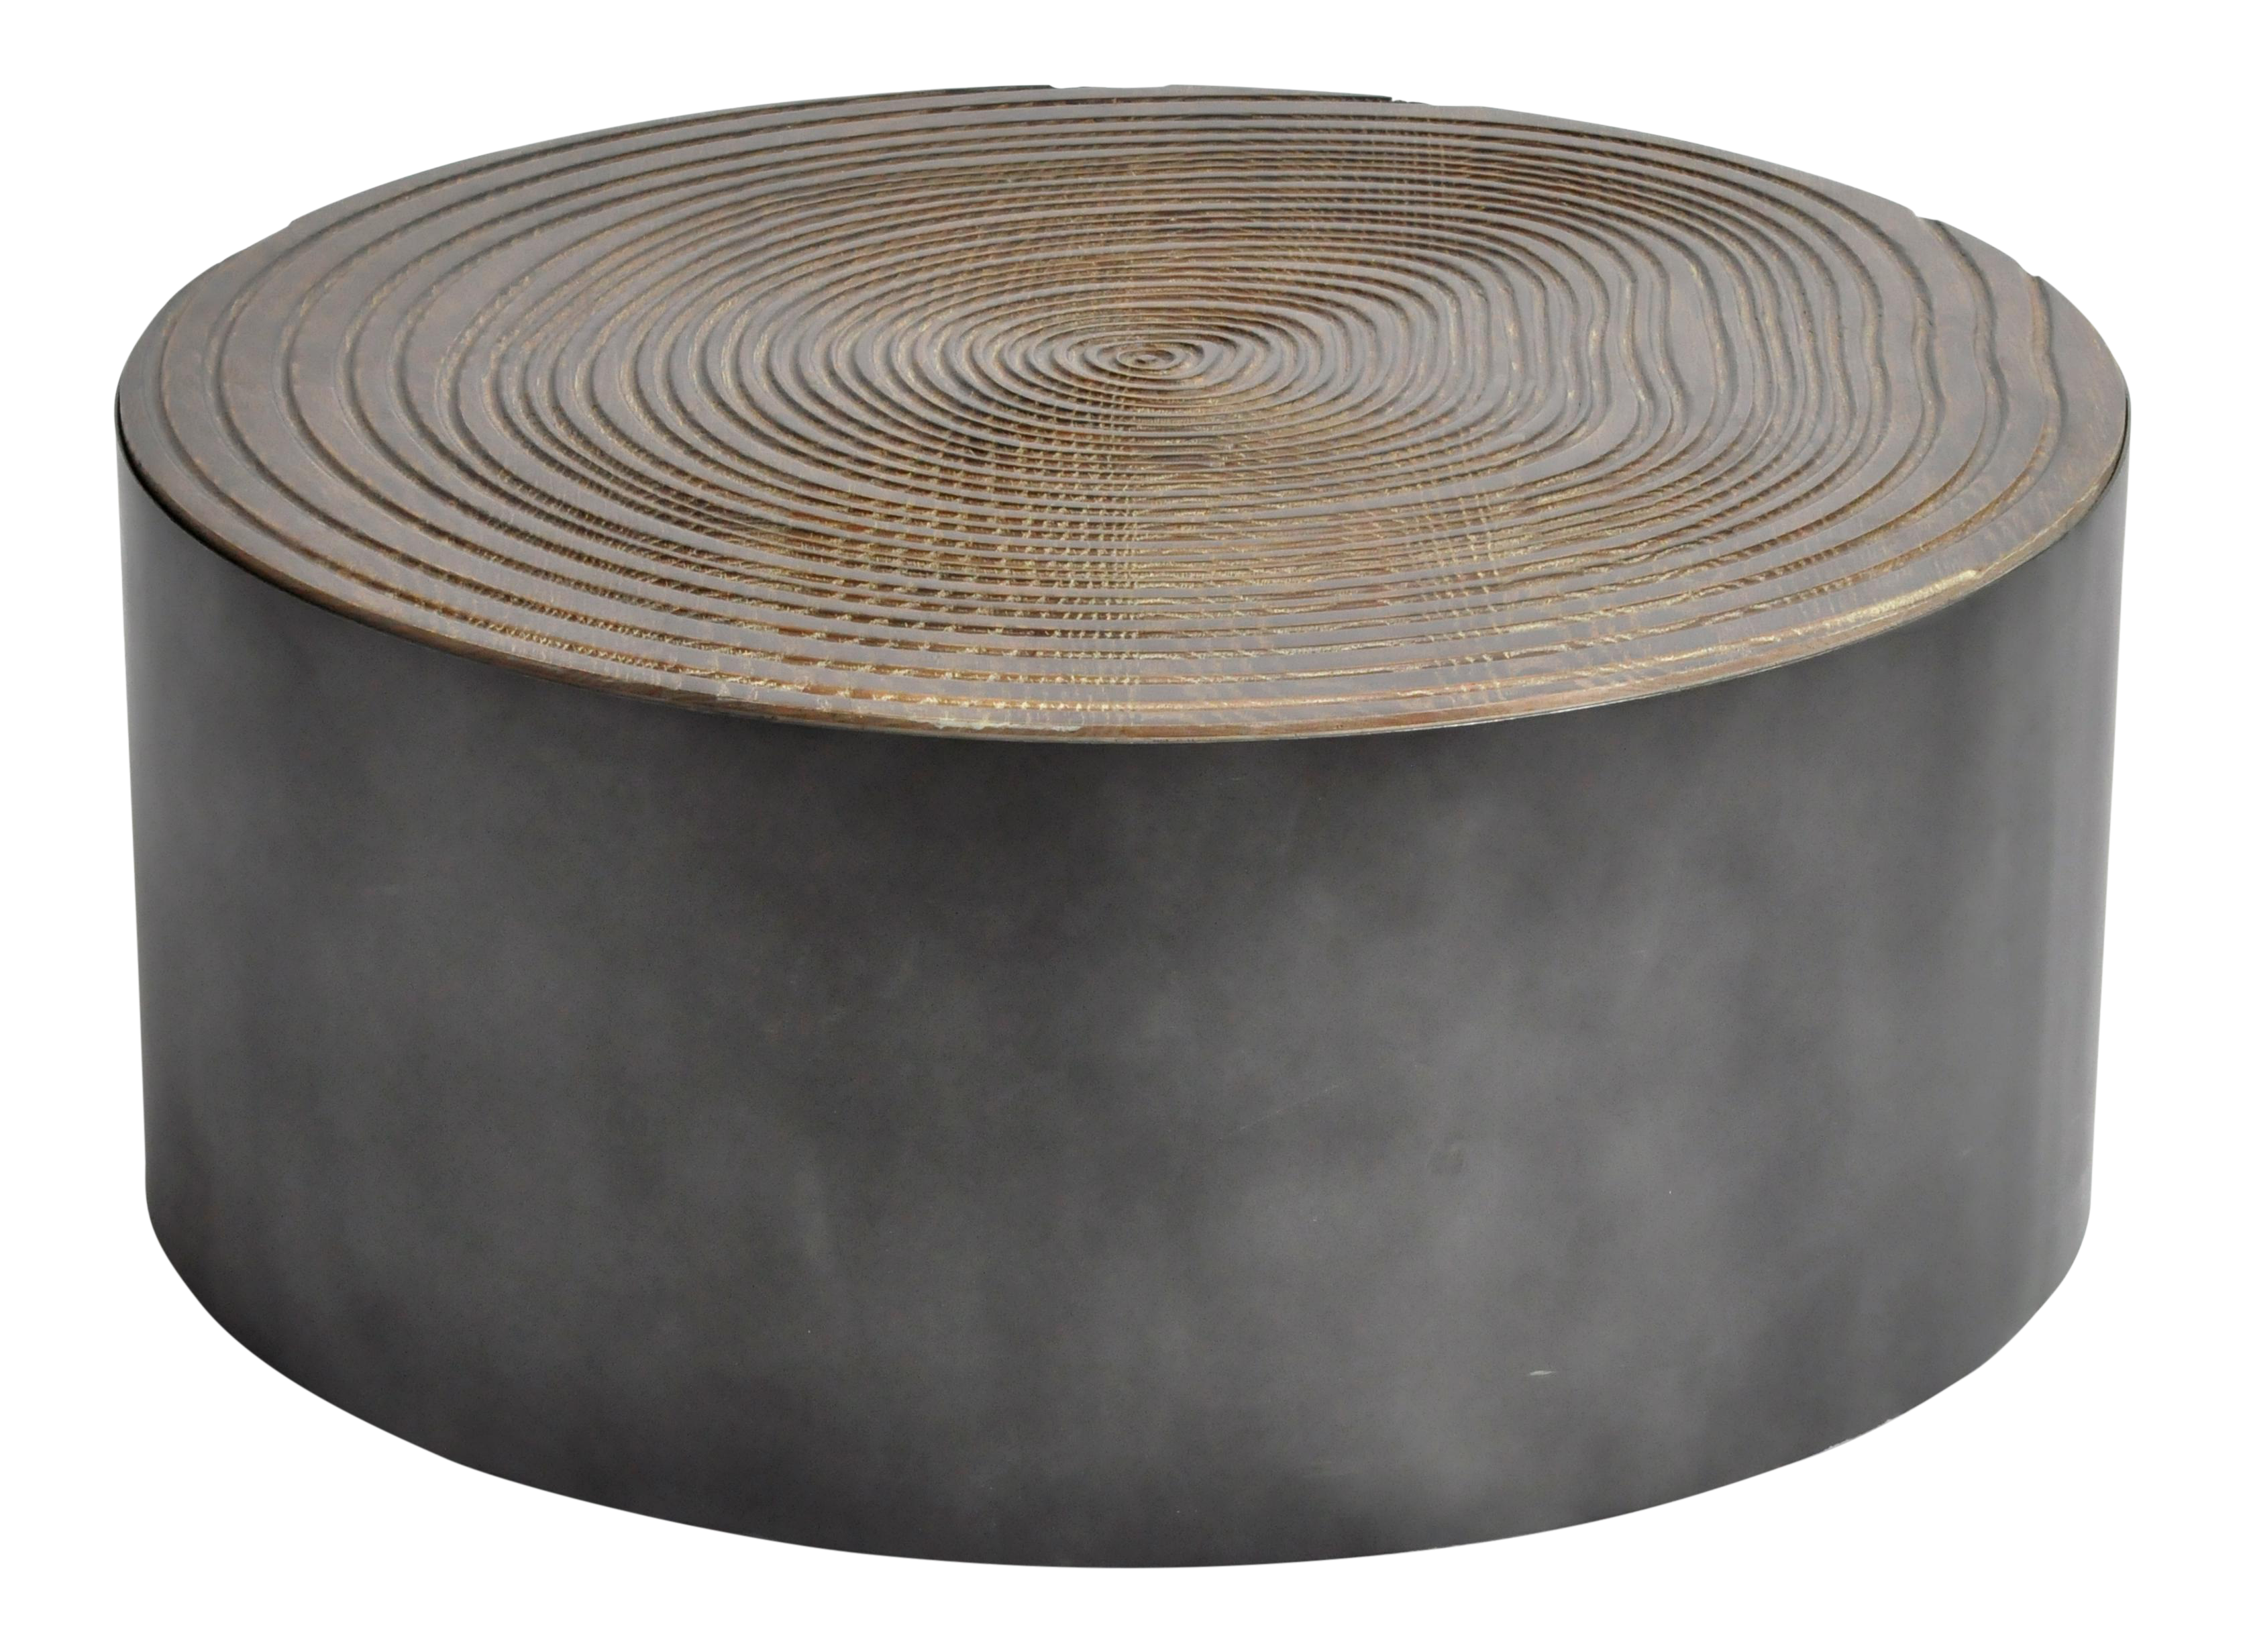 Superb Parisian Round Oak Wood Coffee Table With Metal Base Decaso